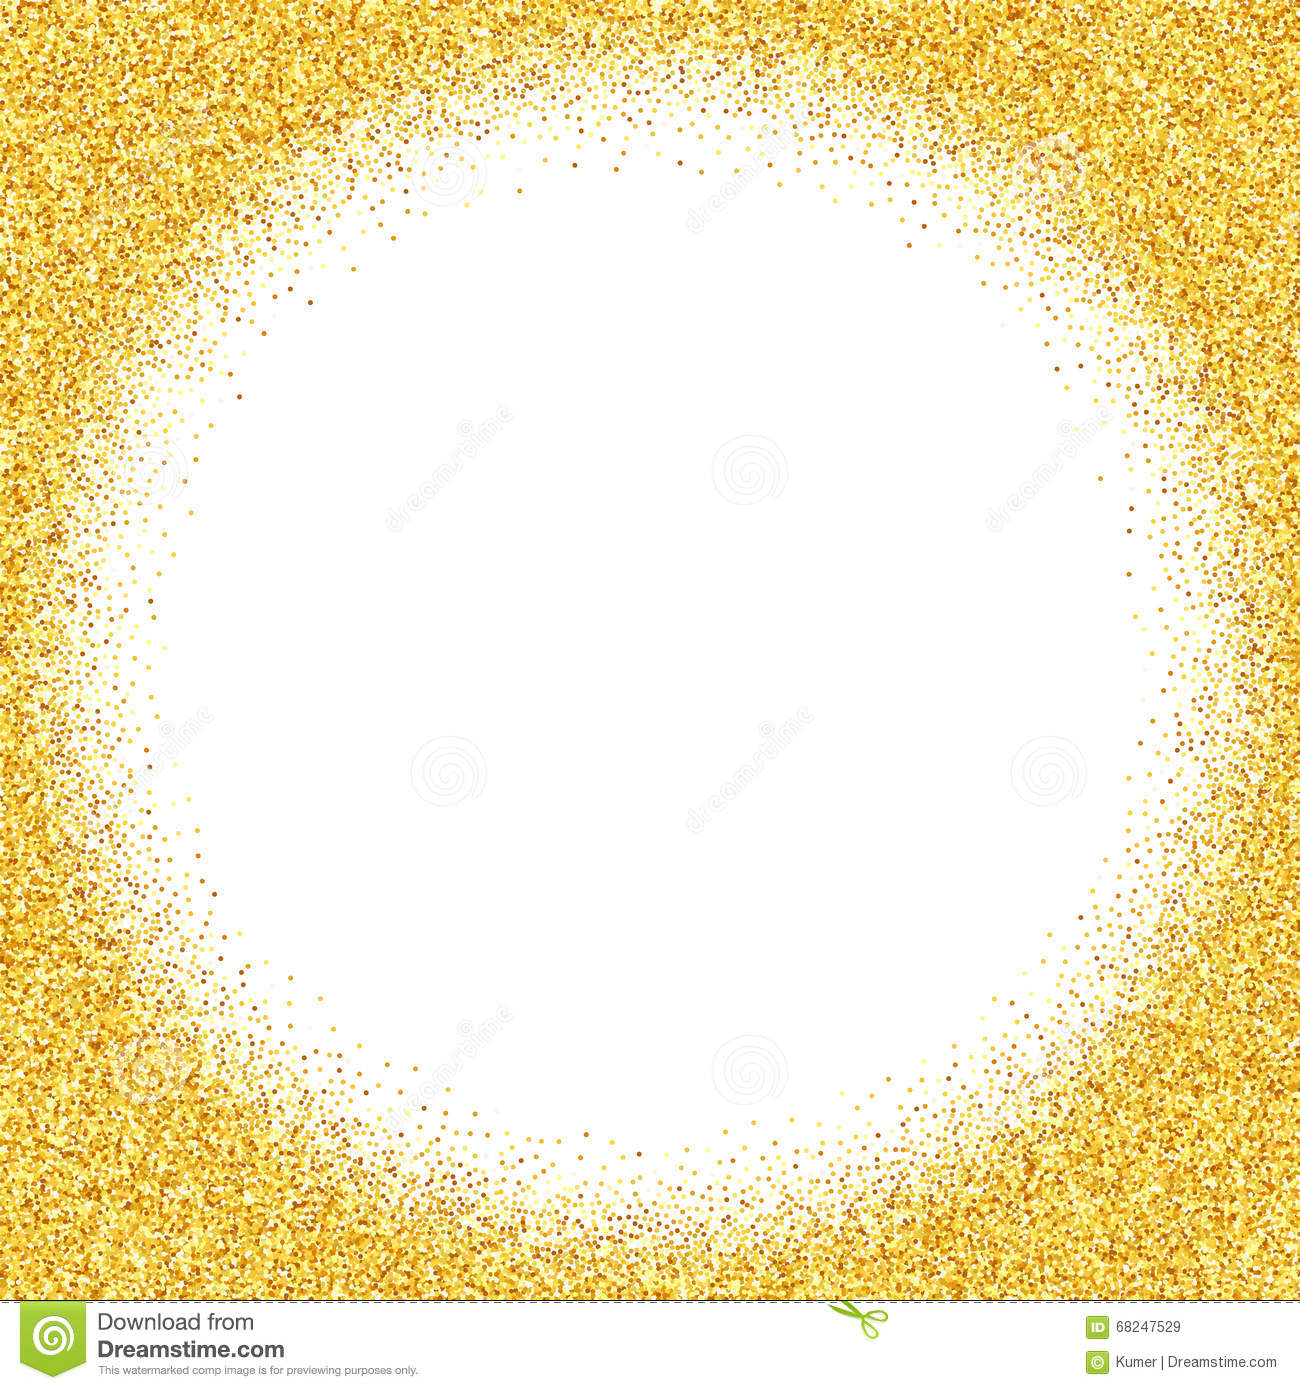 Abstract Vector Gold Dust Glitter Background Illustration 68247529 ...